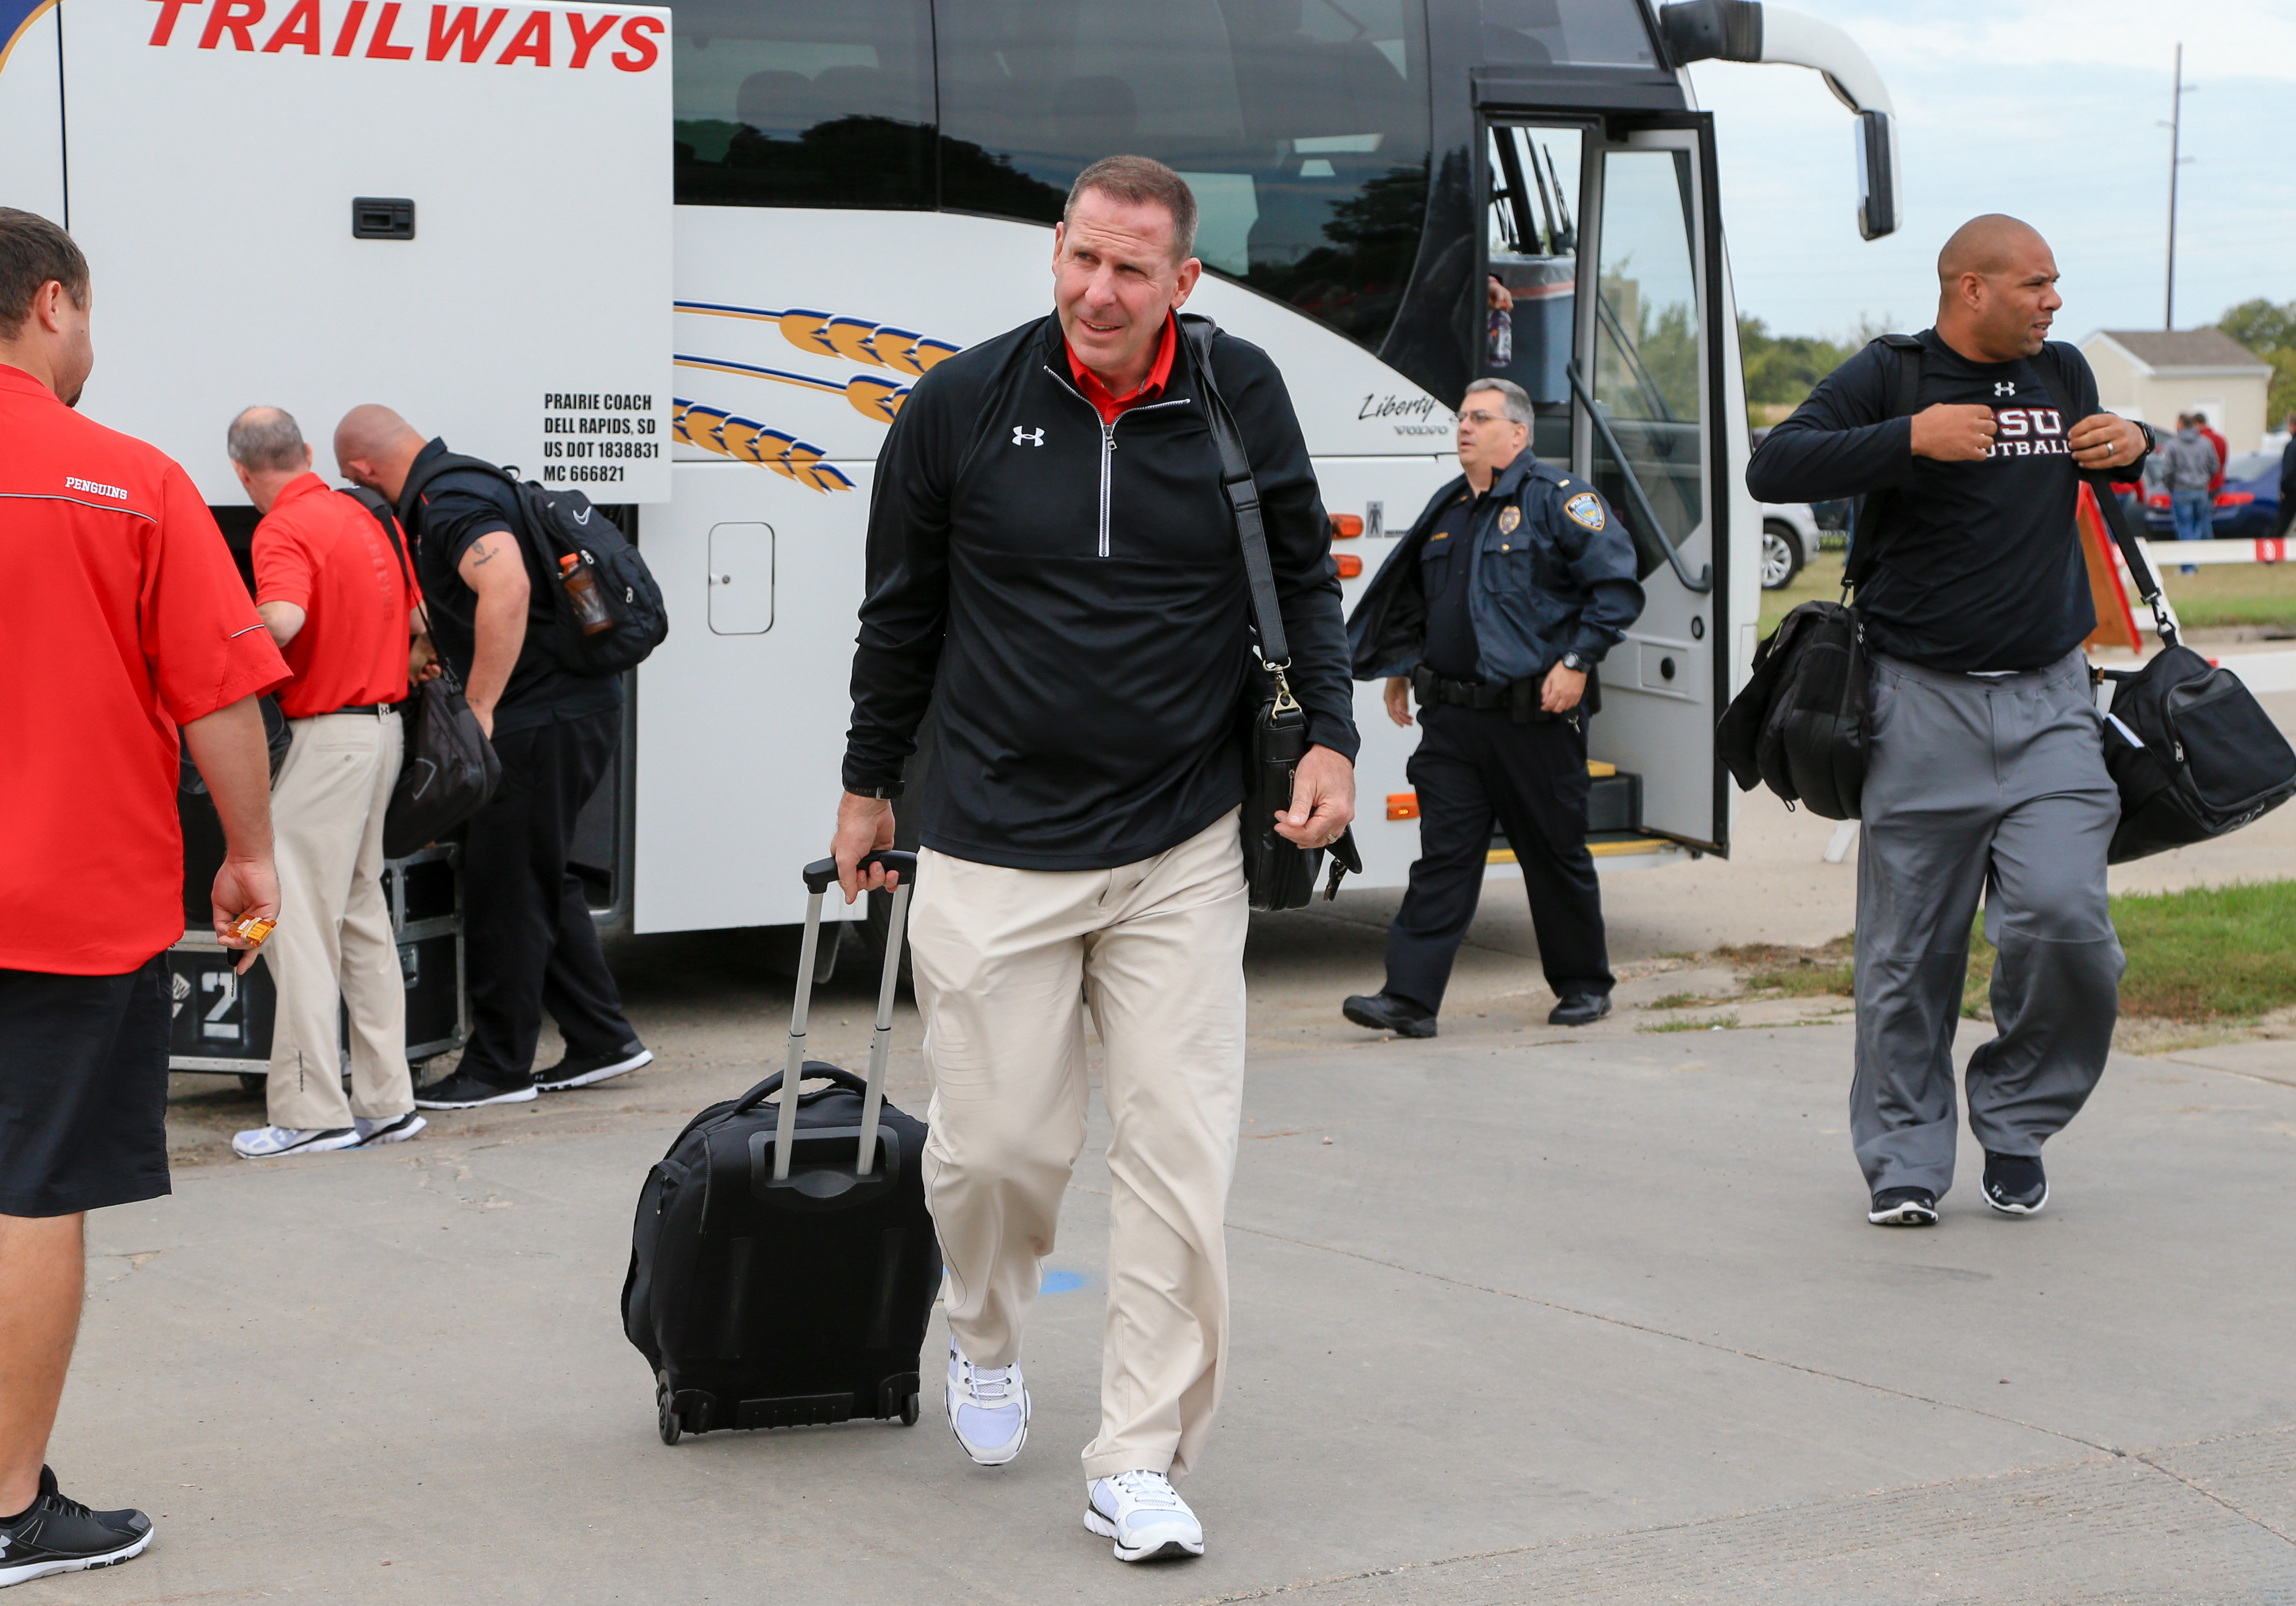 Youngstown State head coach Bo Pelini arrives to the Dakotadome before an NCAA college football game against South Dakota, in Vermillion, S.D., Saturday, Oct. 3, 2015. Vermillion lies seven miles north of the Nebraska state line, an area deep within the H